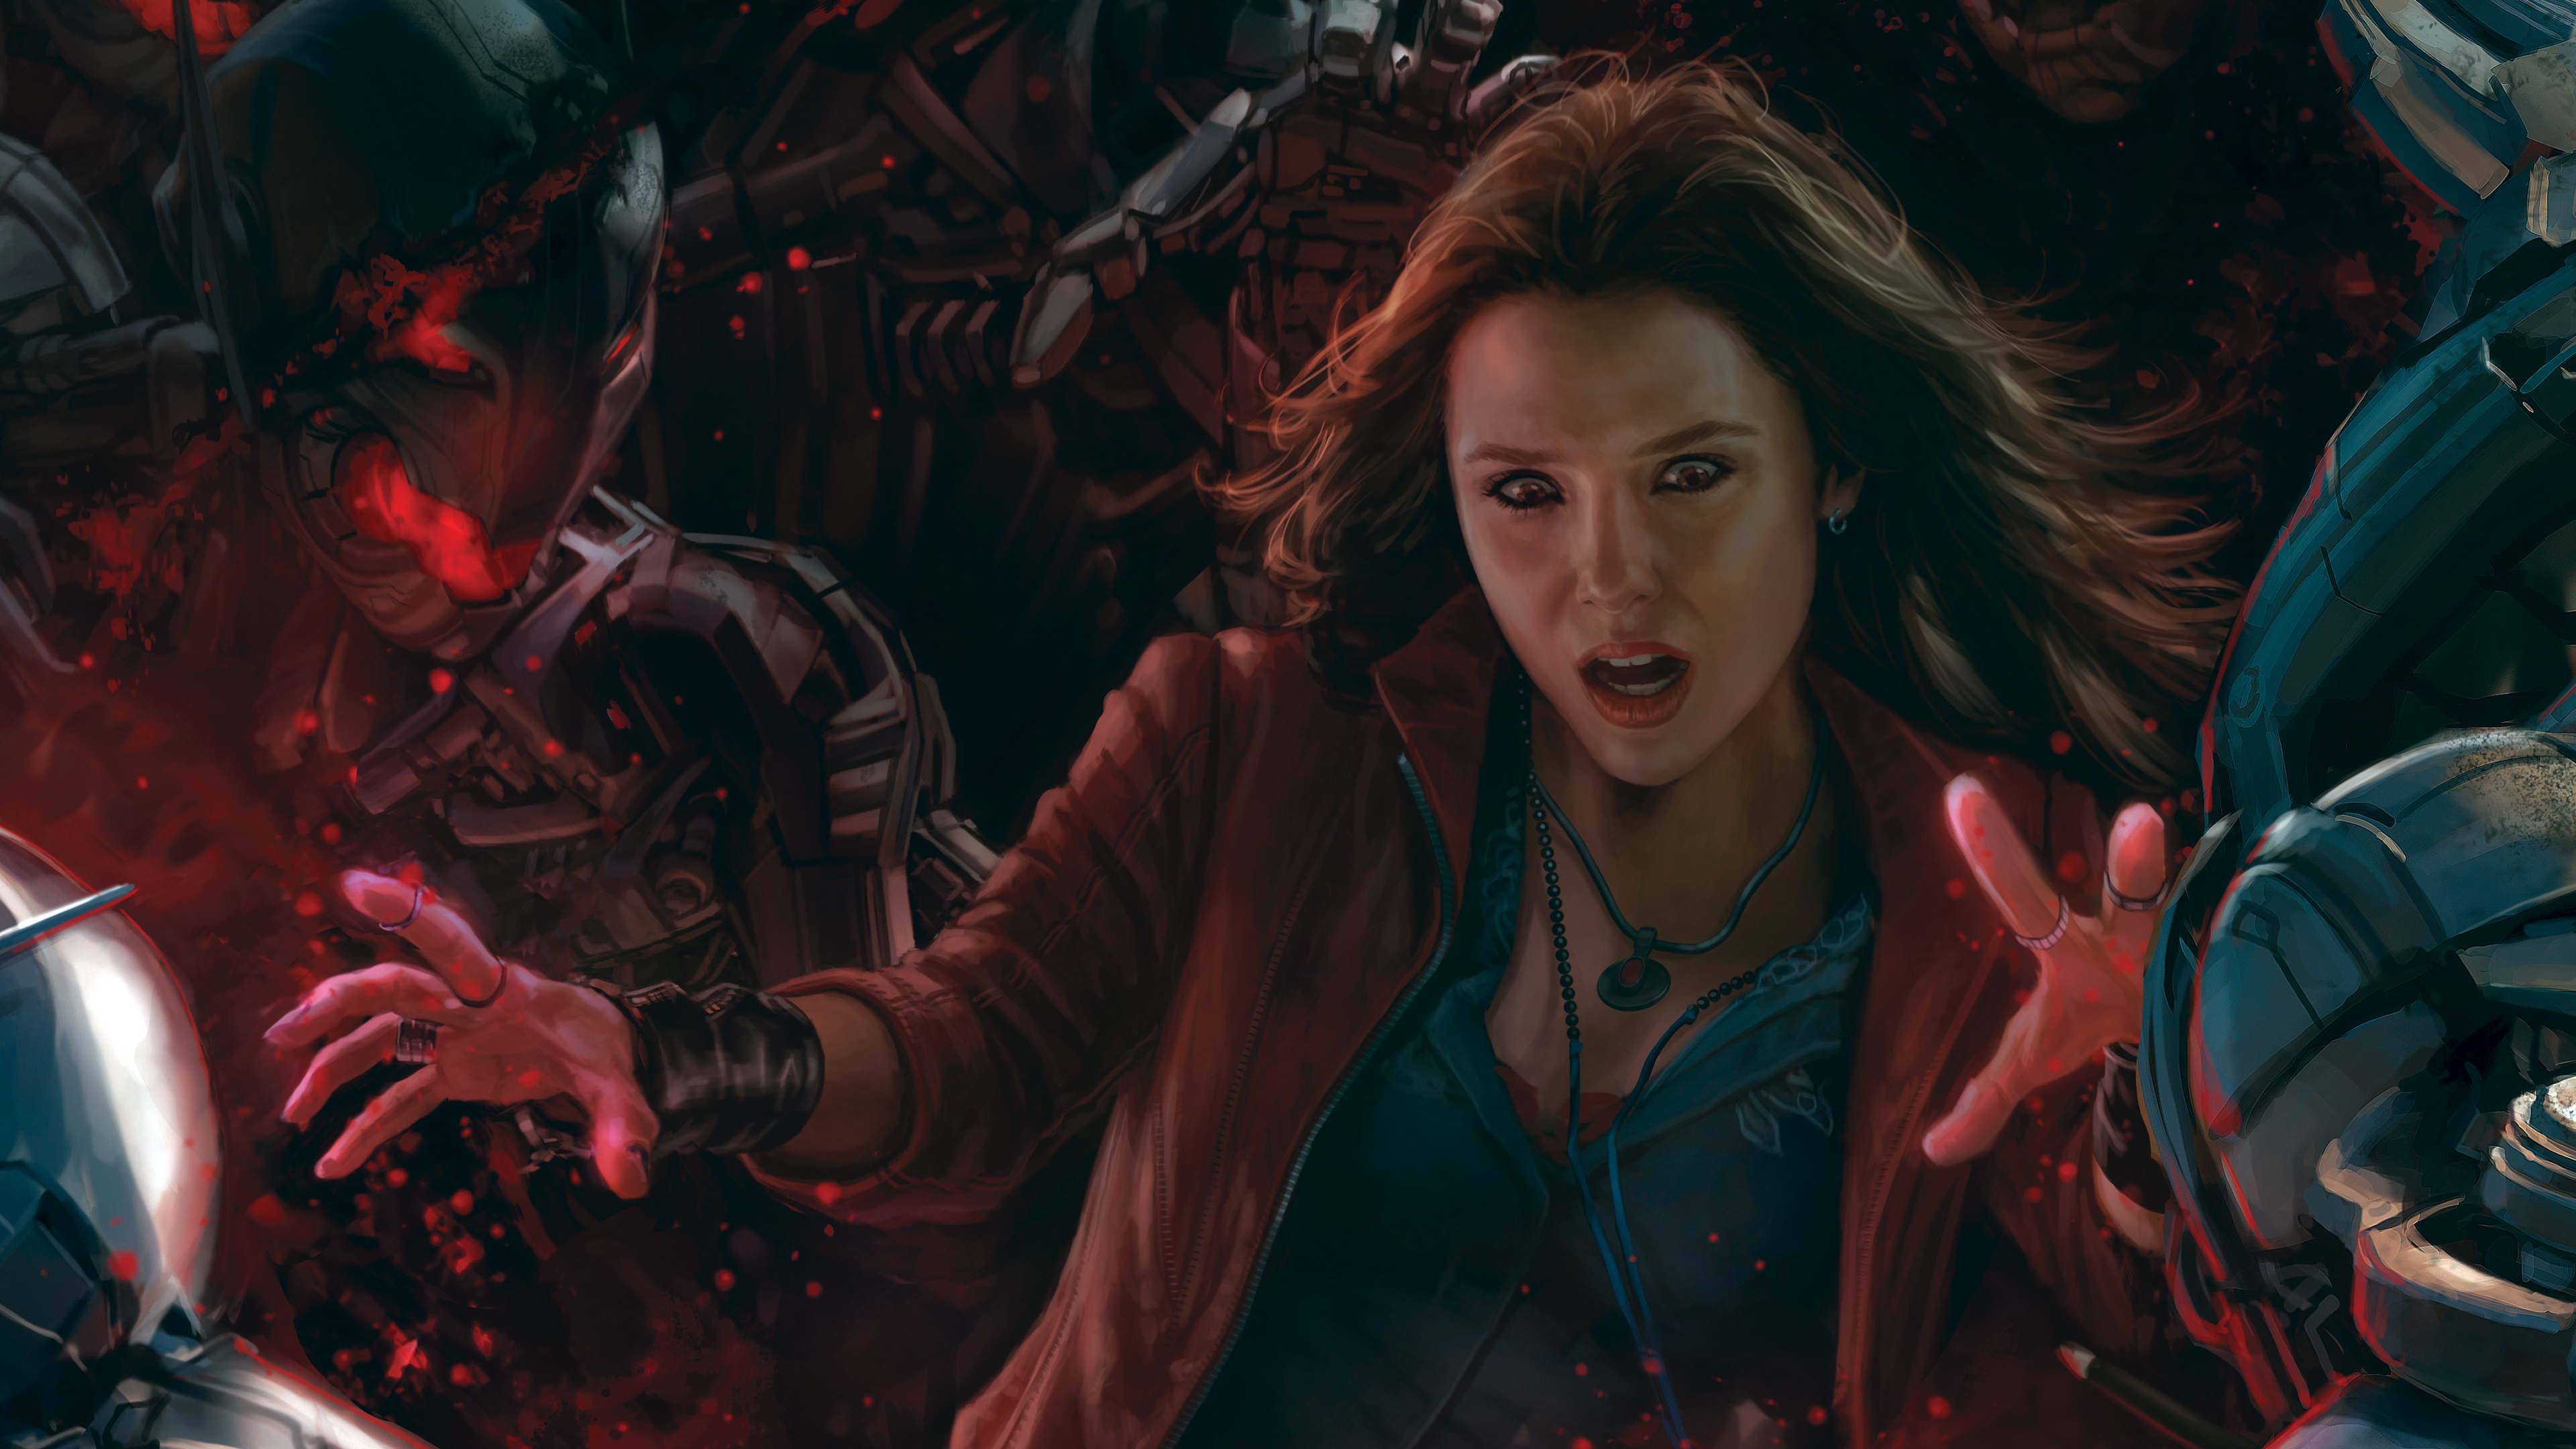 Scarlet Witch 568355 Hd Wallpaper Backgrounds Download